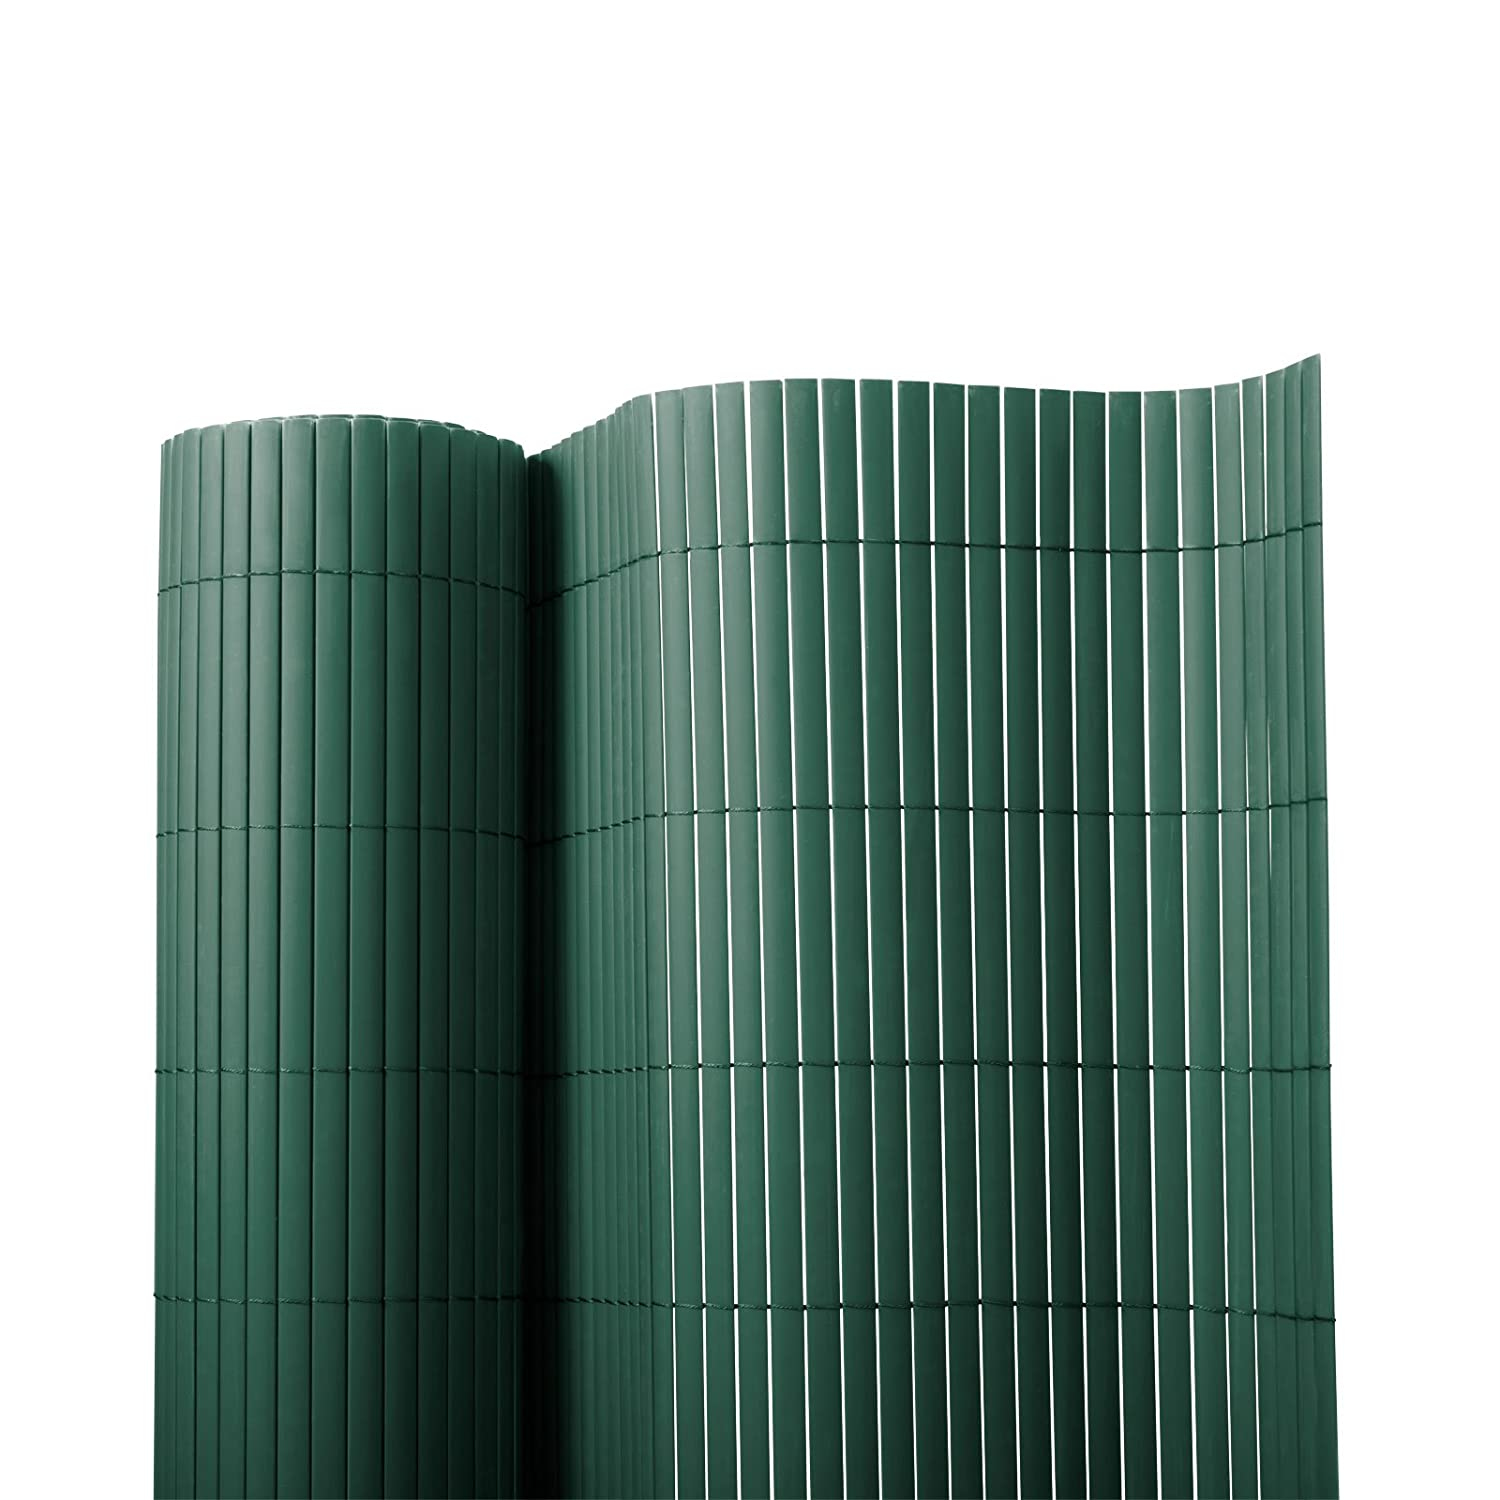 casa pura PVC Garden Screen Fence, Green - 100 x 500 cm | 7 Sizes Available - Protective Screening Fence